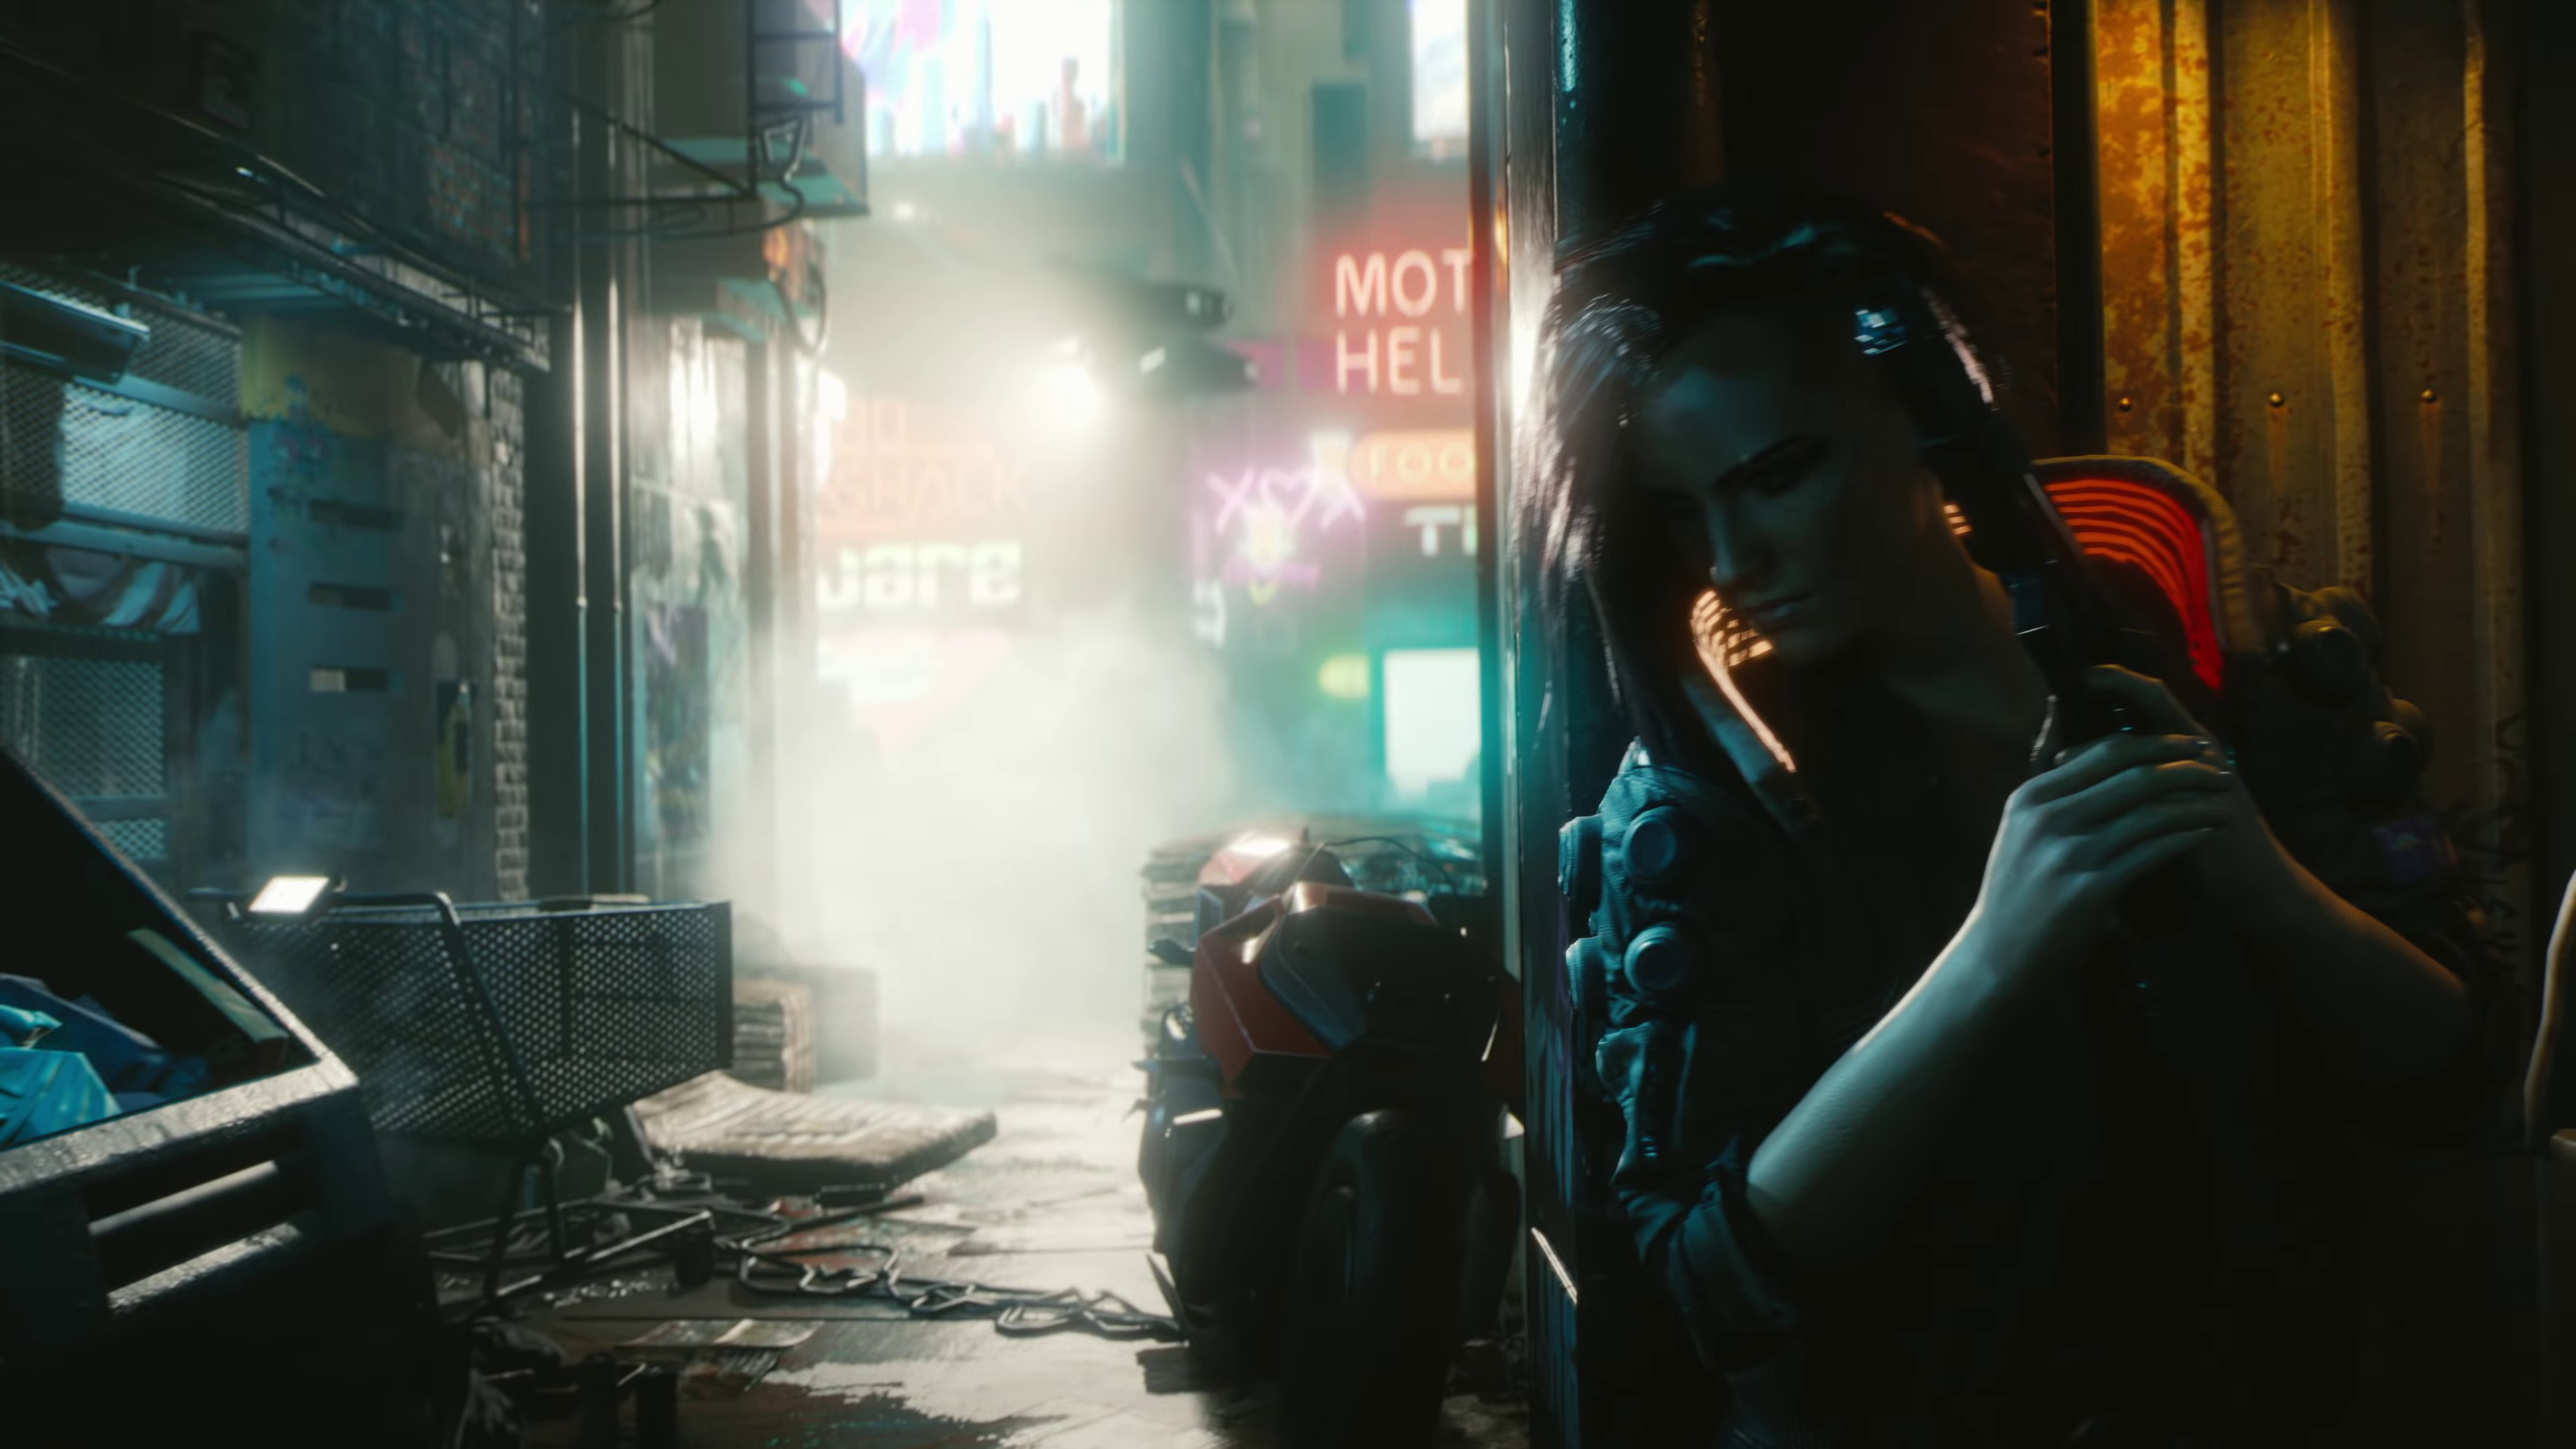 Cyberpunk 2077 Uhd Wallpaper Download High Resolution 4k Wallpaper